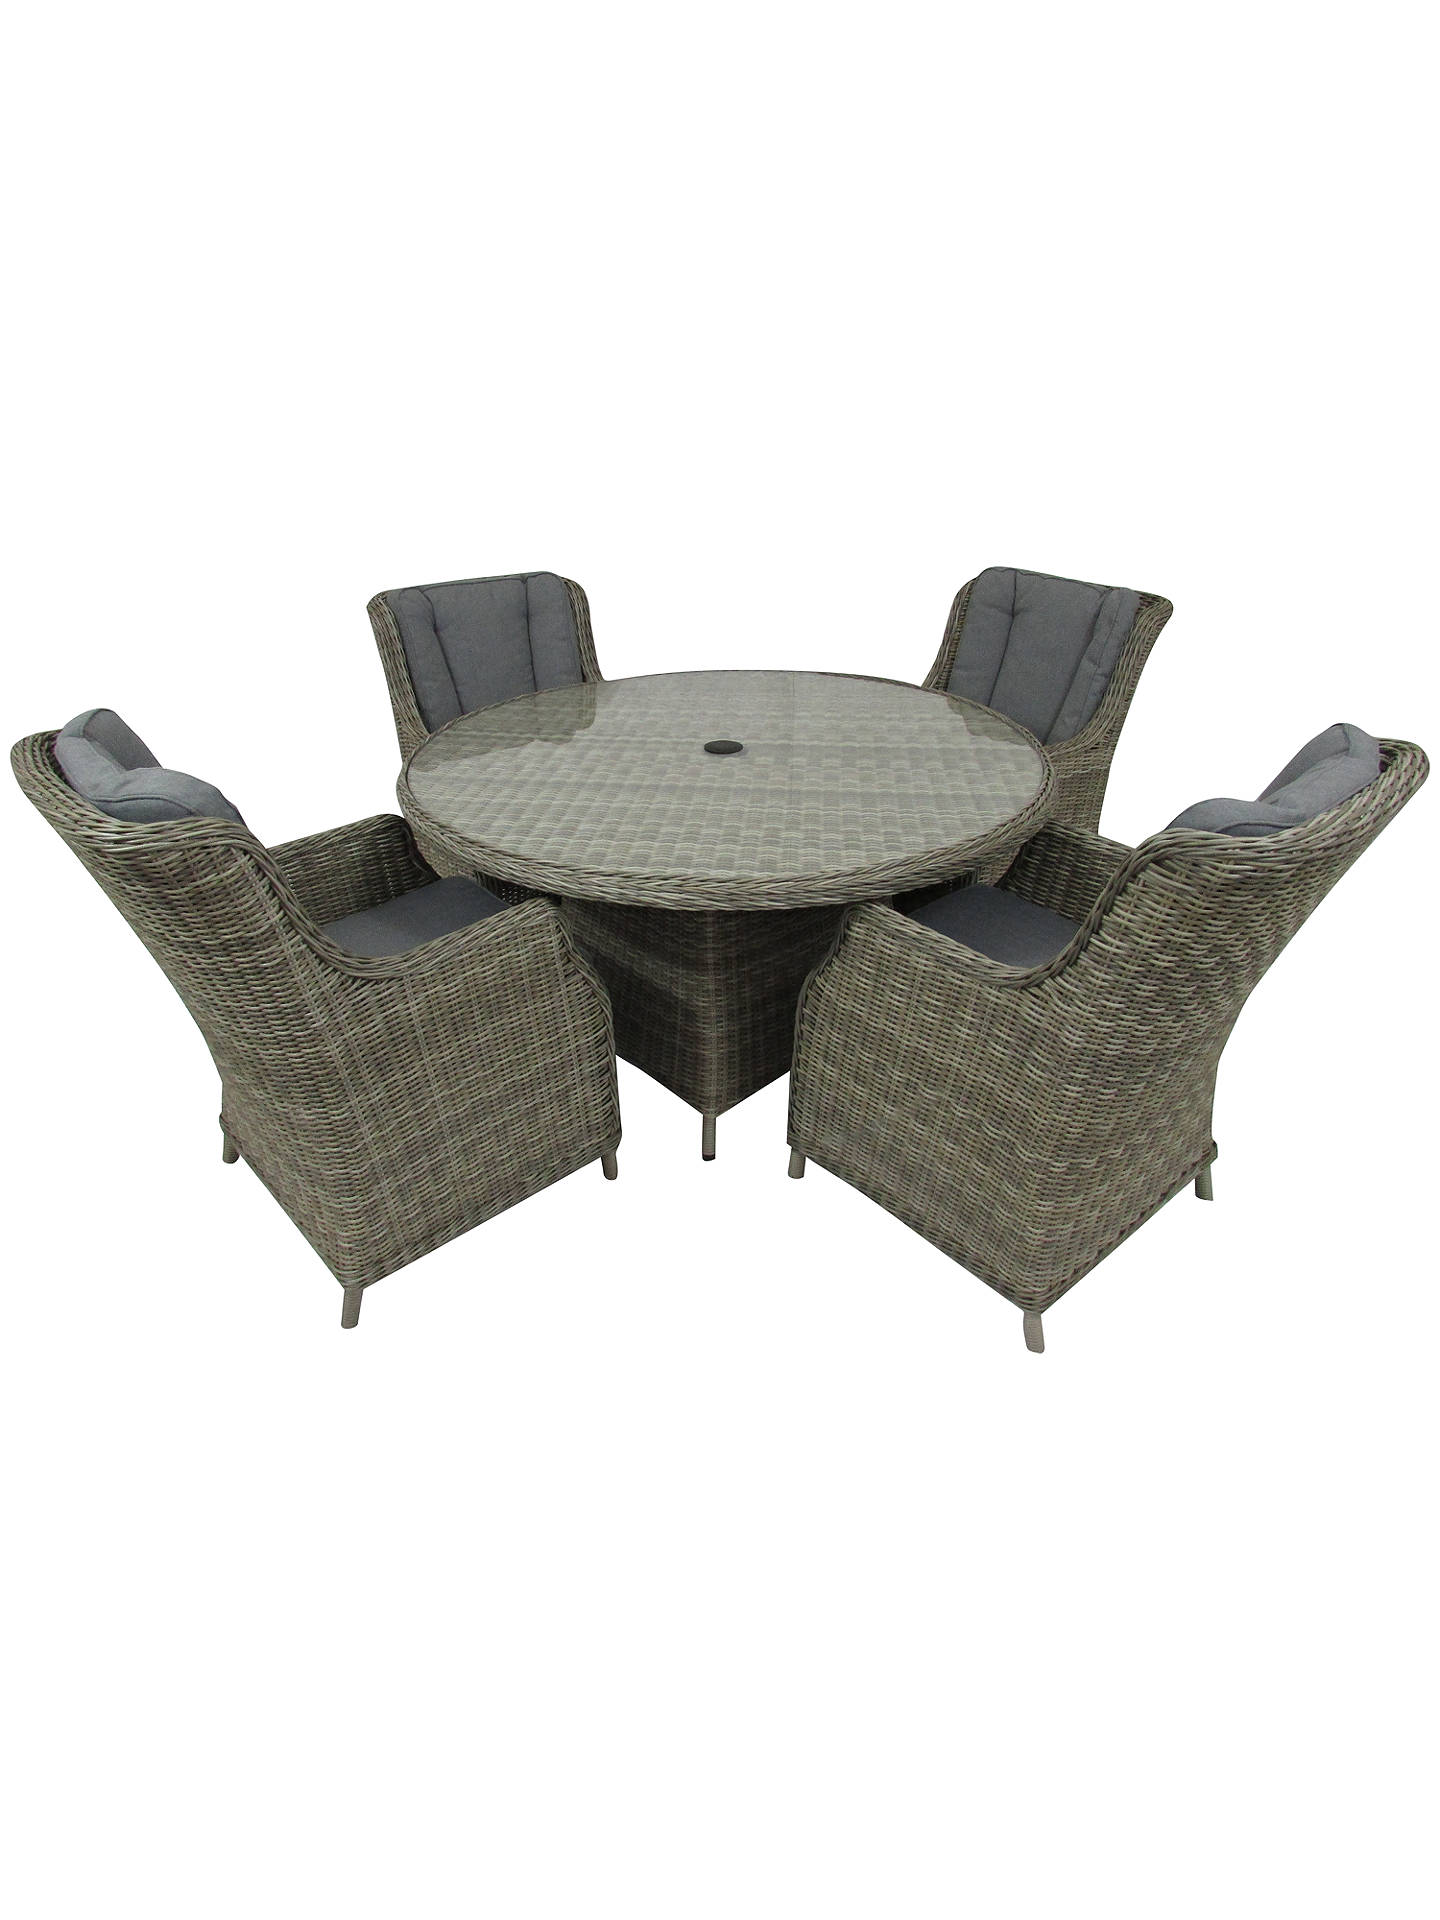 BuyRoyalcraft Wentworth 4-Seater Garden Comfort Dining Table and Chairs Set Online at johnlewis.com